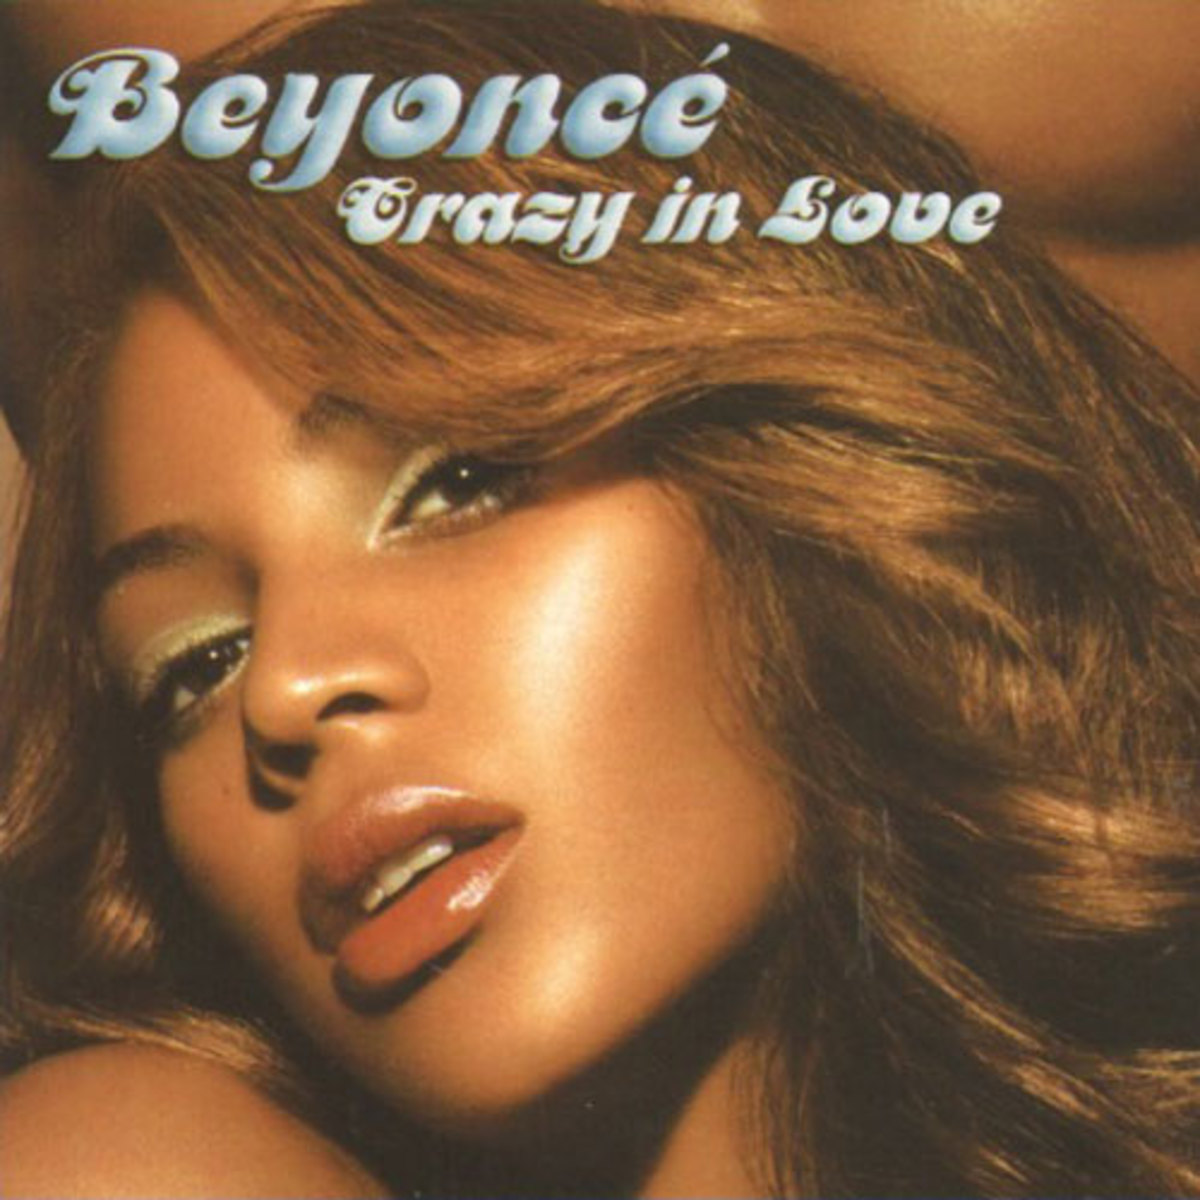 beyonce-crazy-in-love.jpg